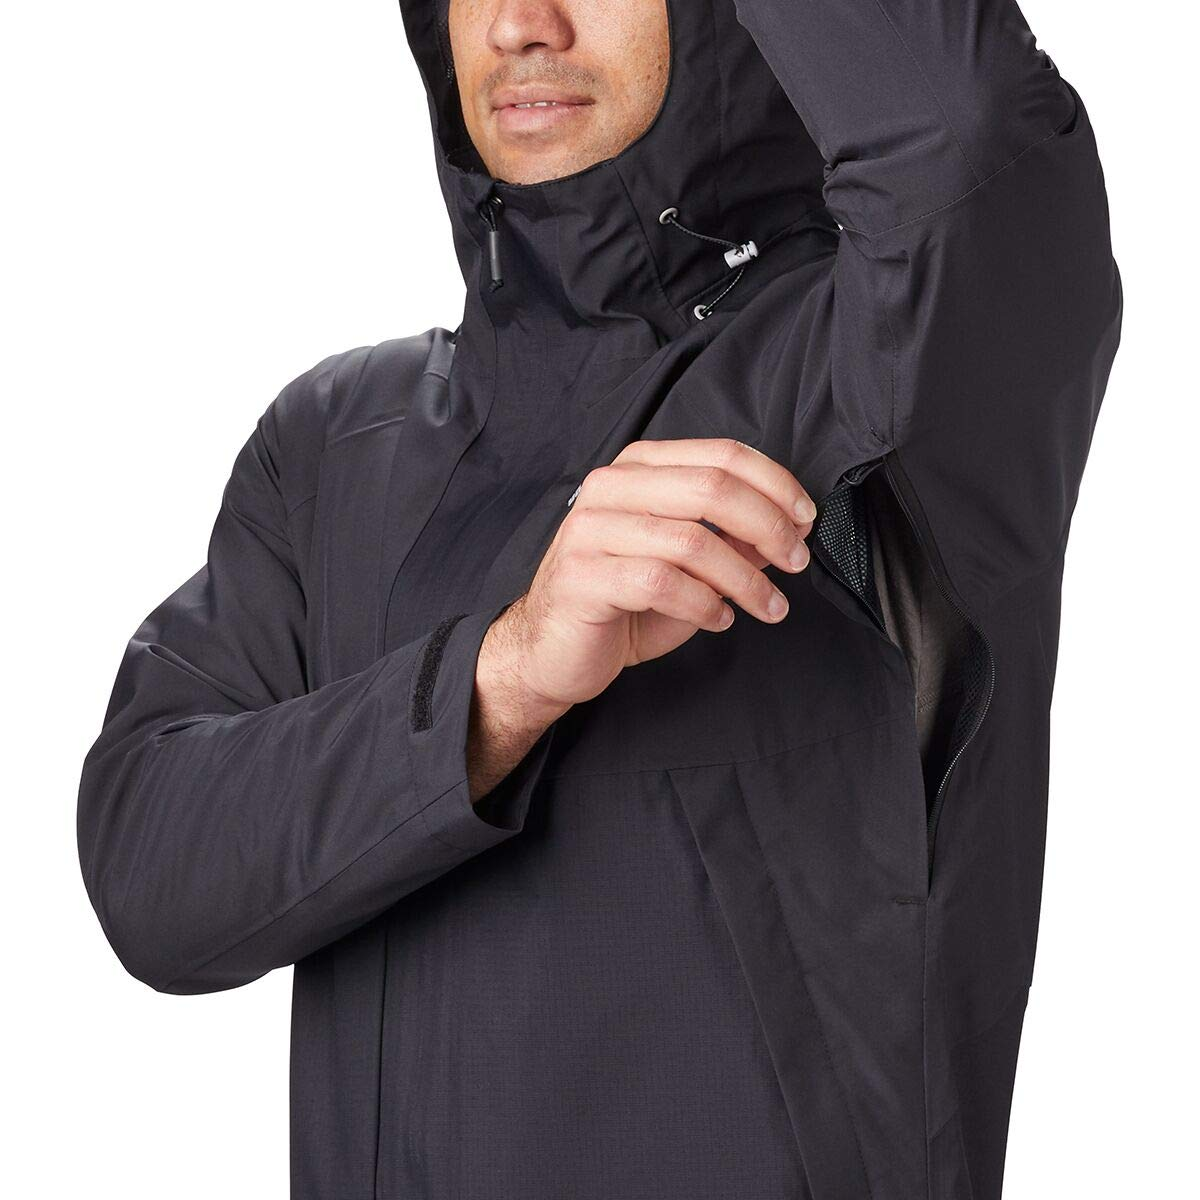 L, COLUMBIA EVOLUTION VALLEY RAIN JACKET - BLACK en Perú ...